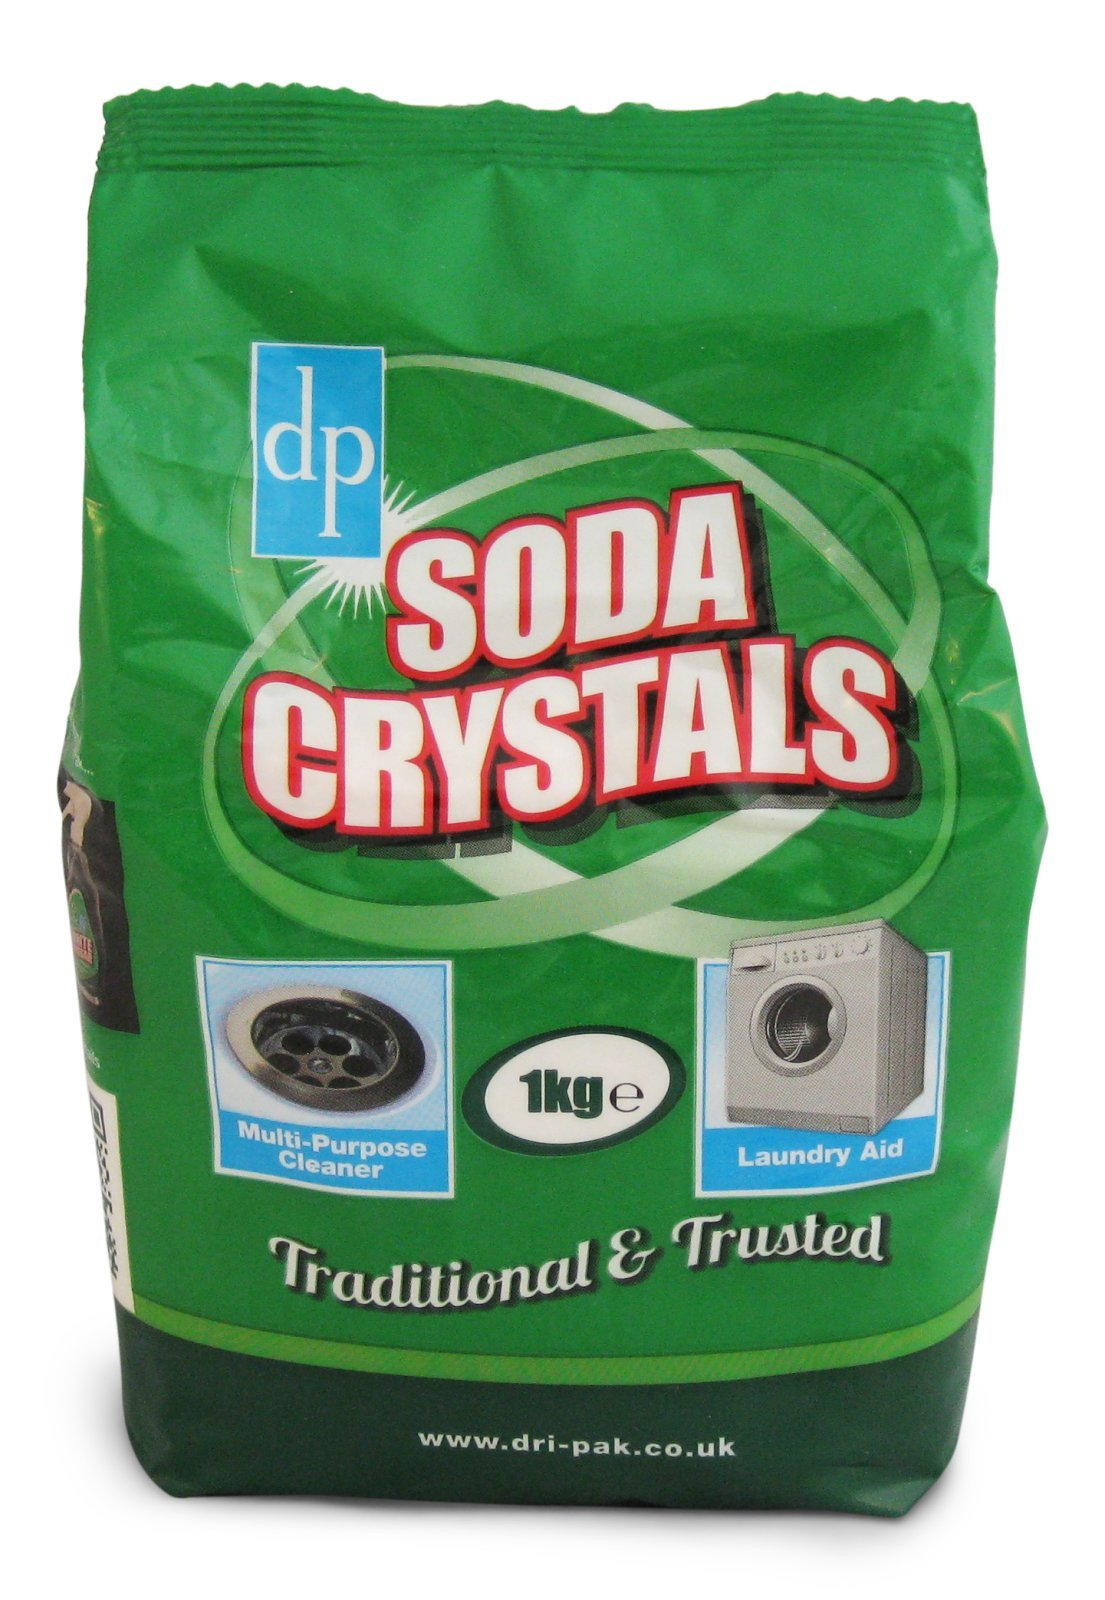 Picture of 1kg bag of Dri-Pak Soda Crystals